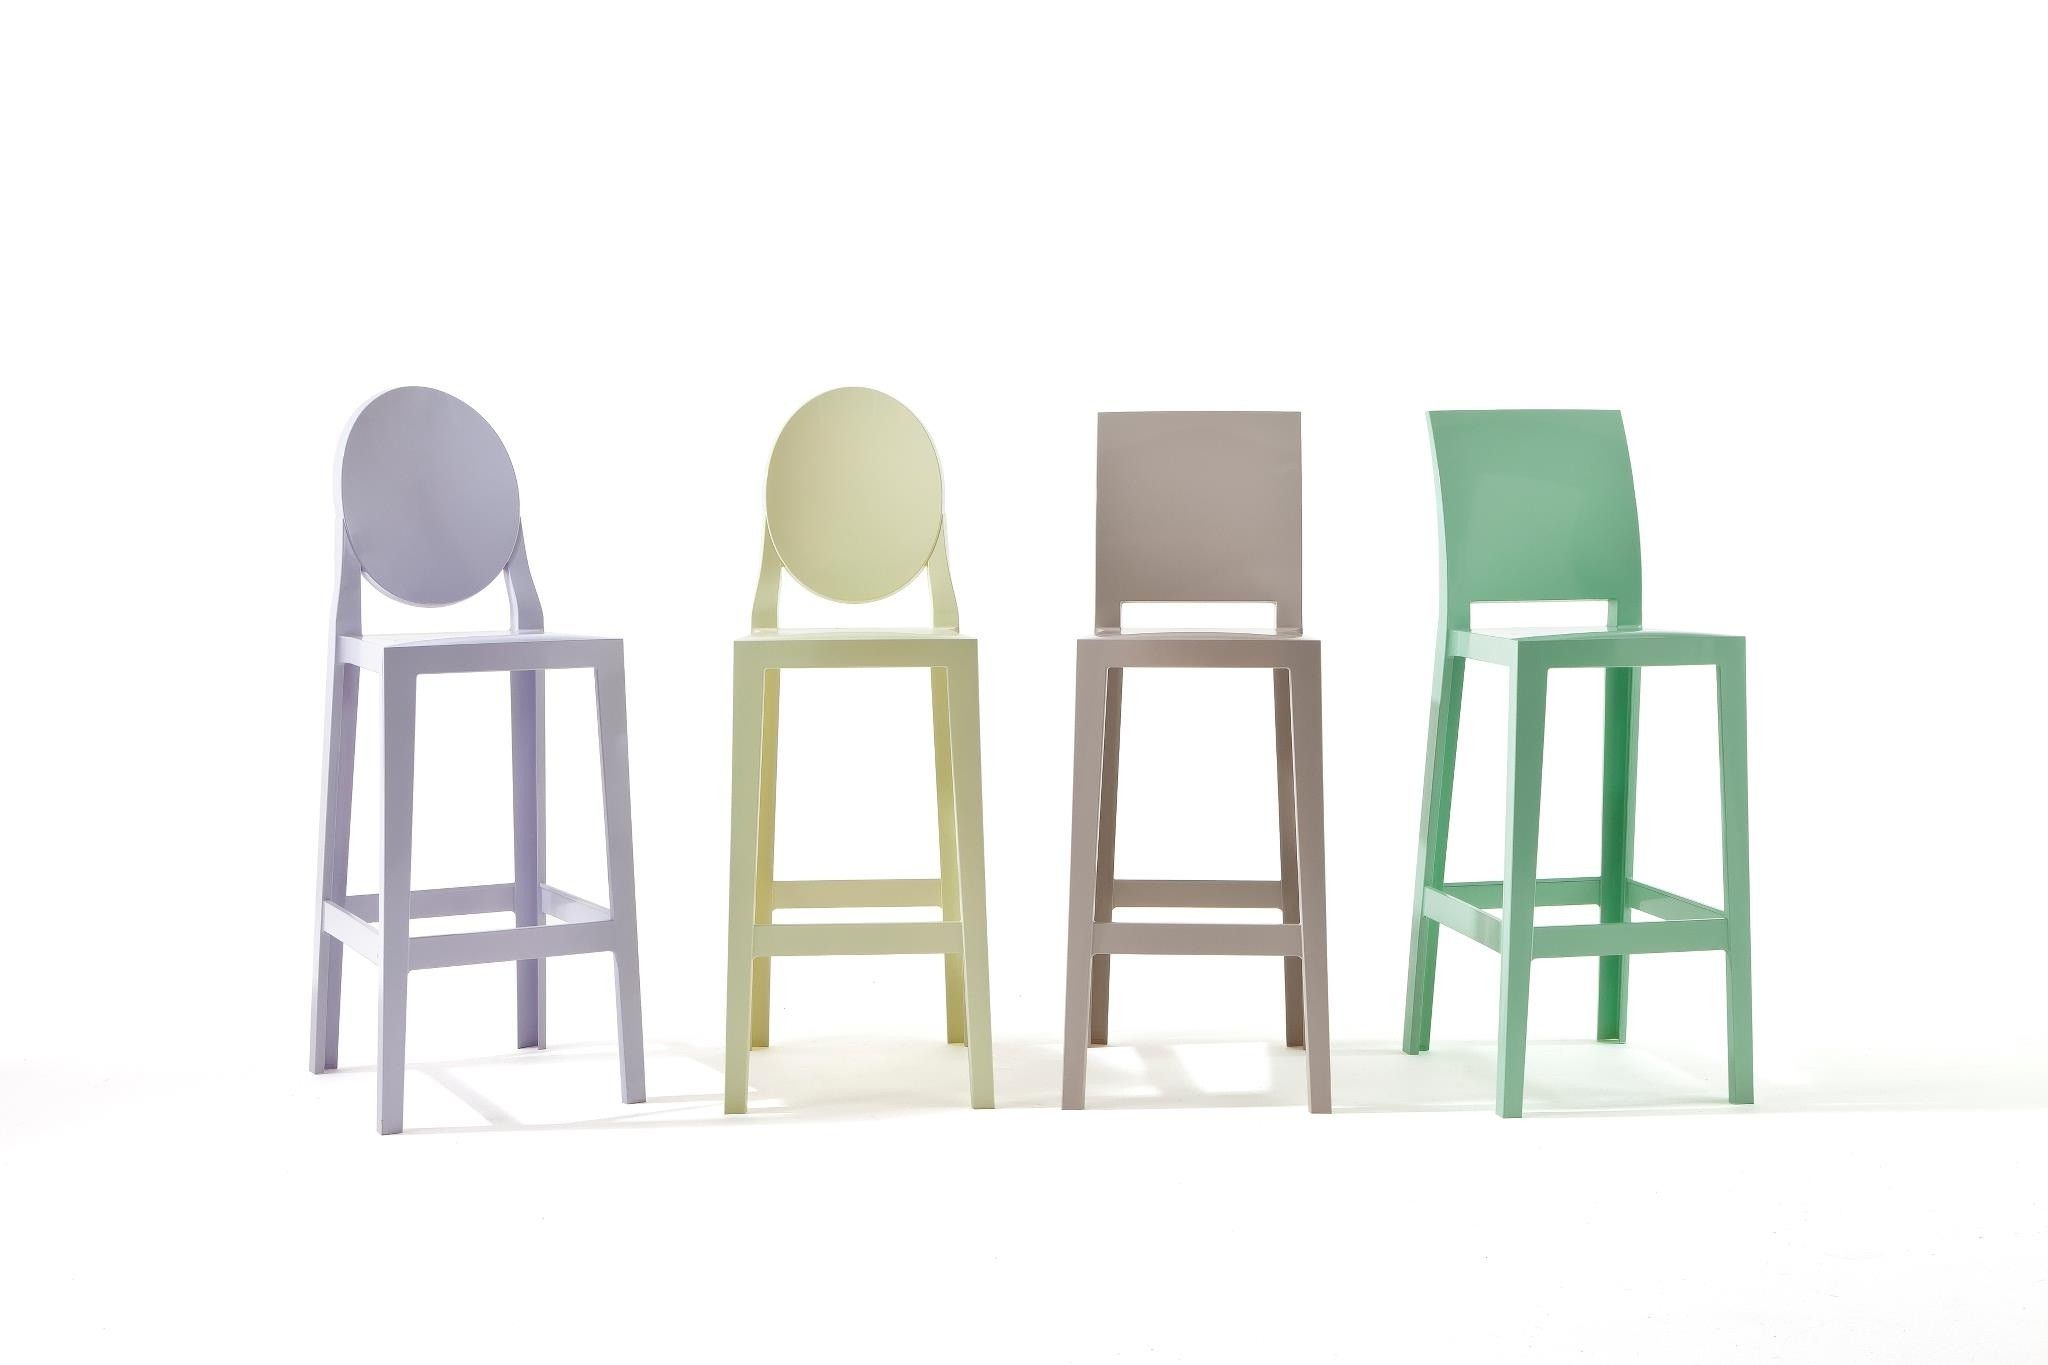 Latest edition to the kartell ghost family £208 latest designs